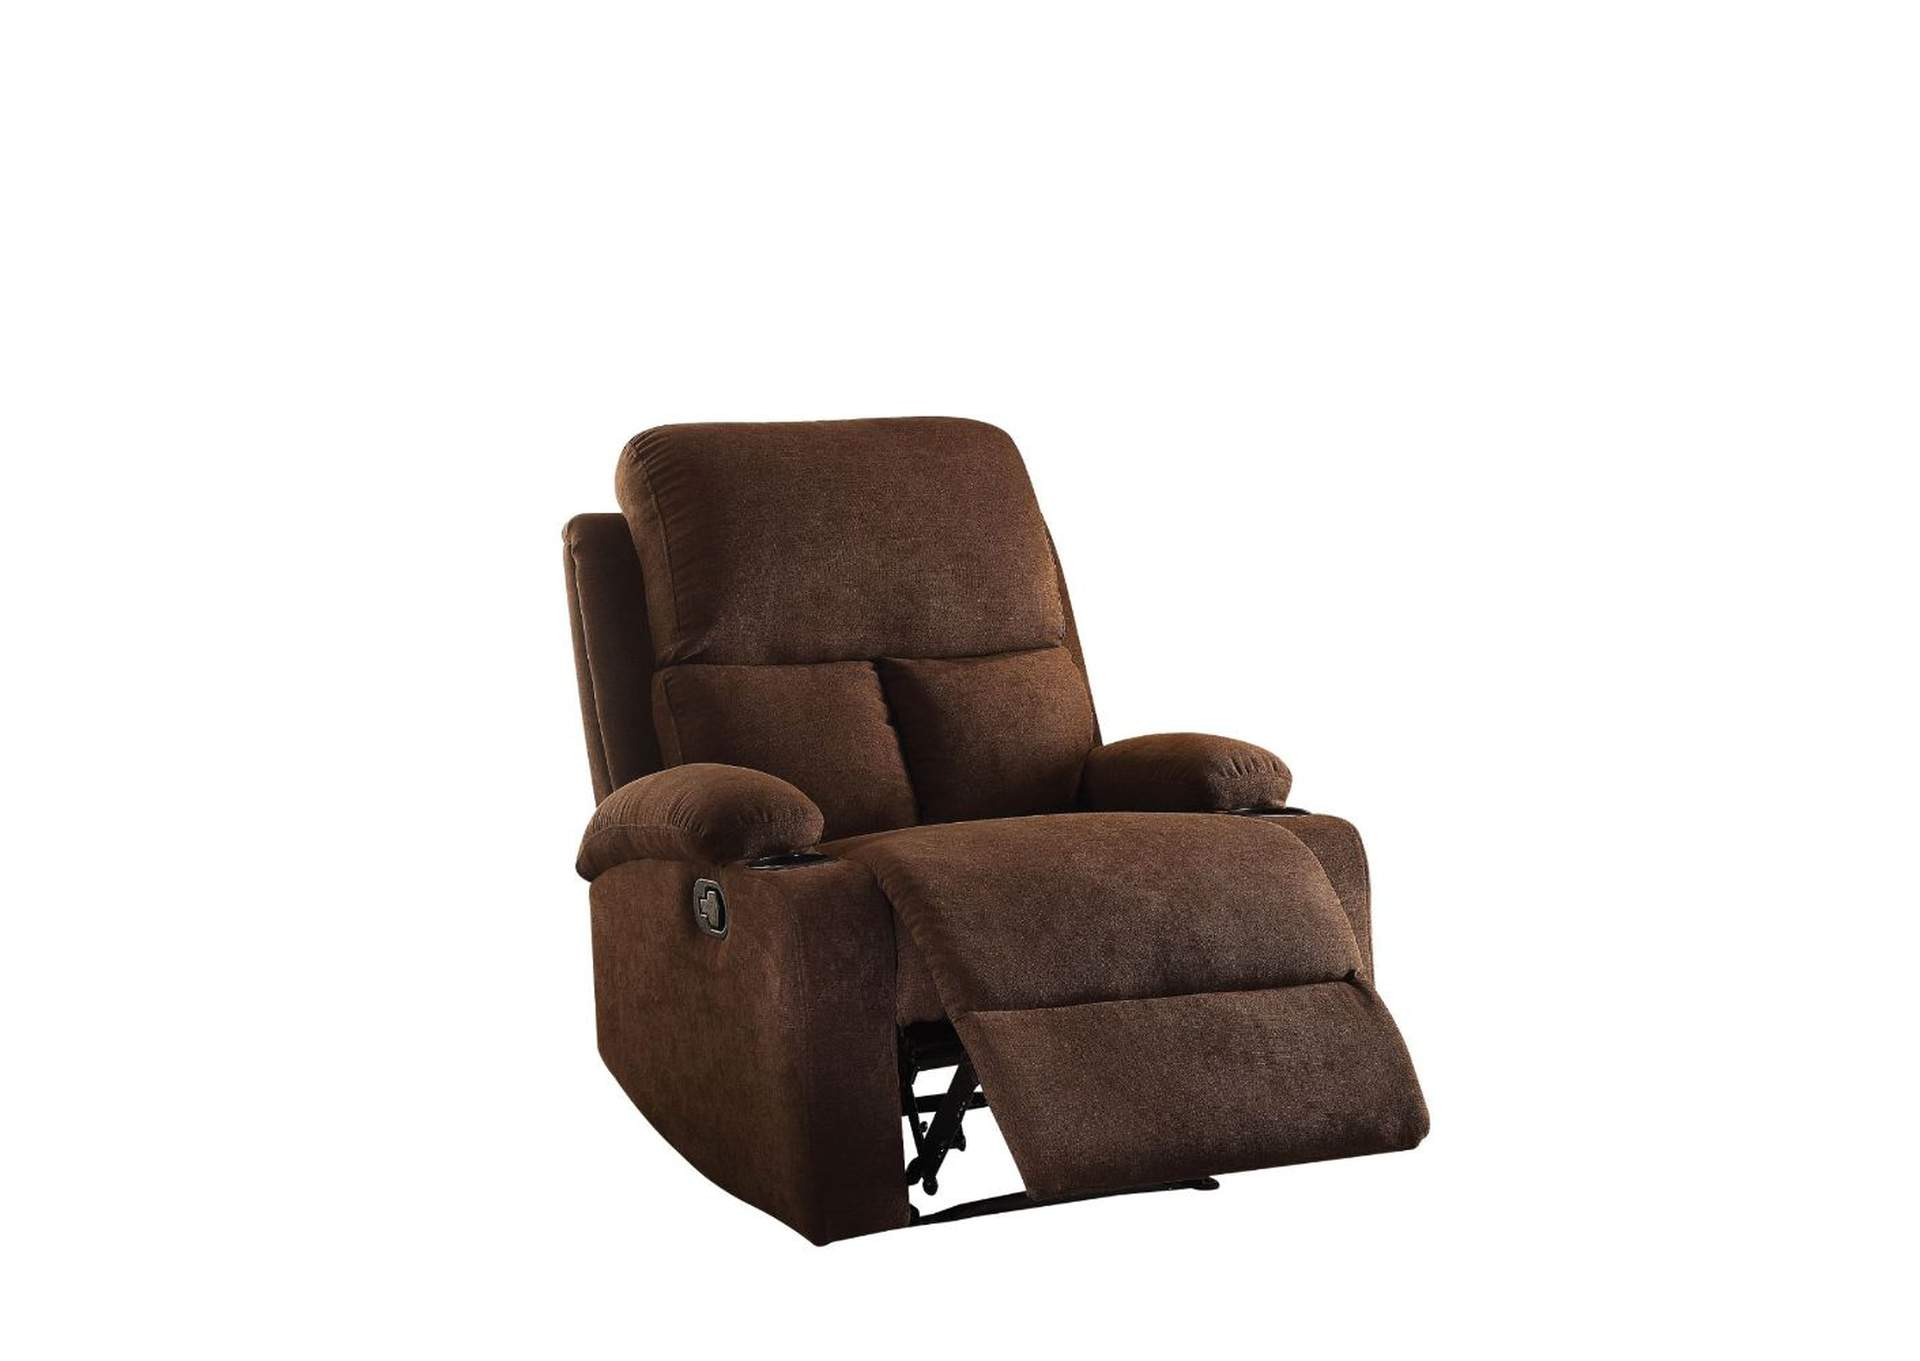 Rosia Chocolate Recliner,Acme